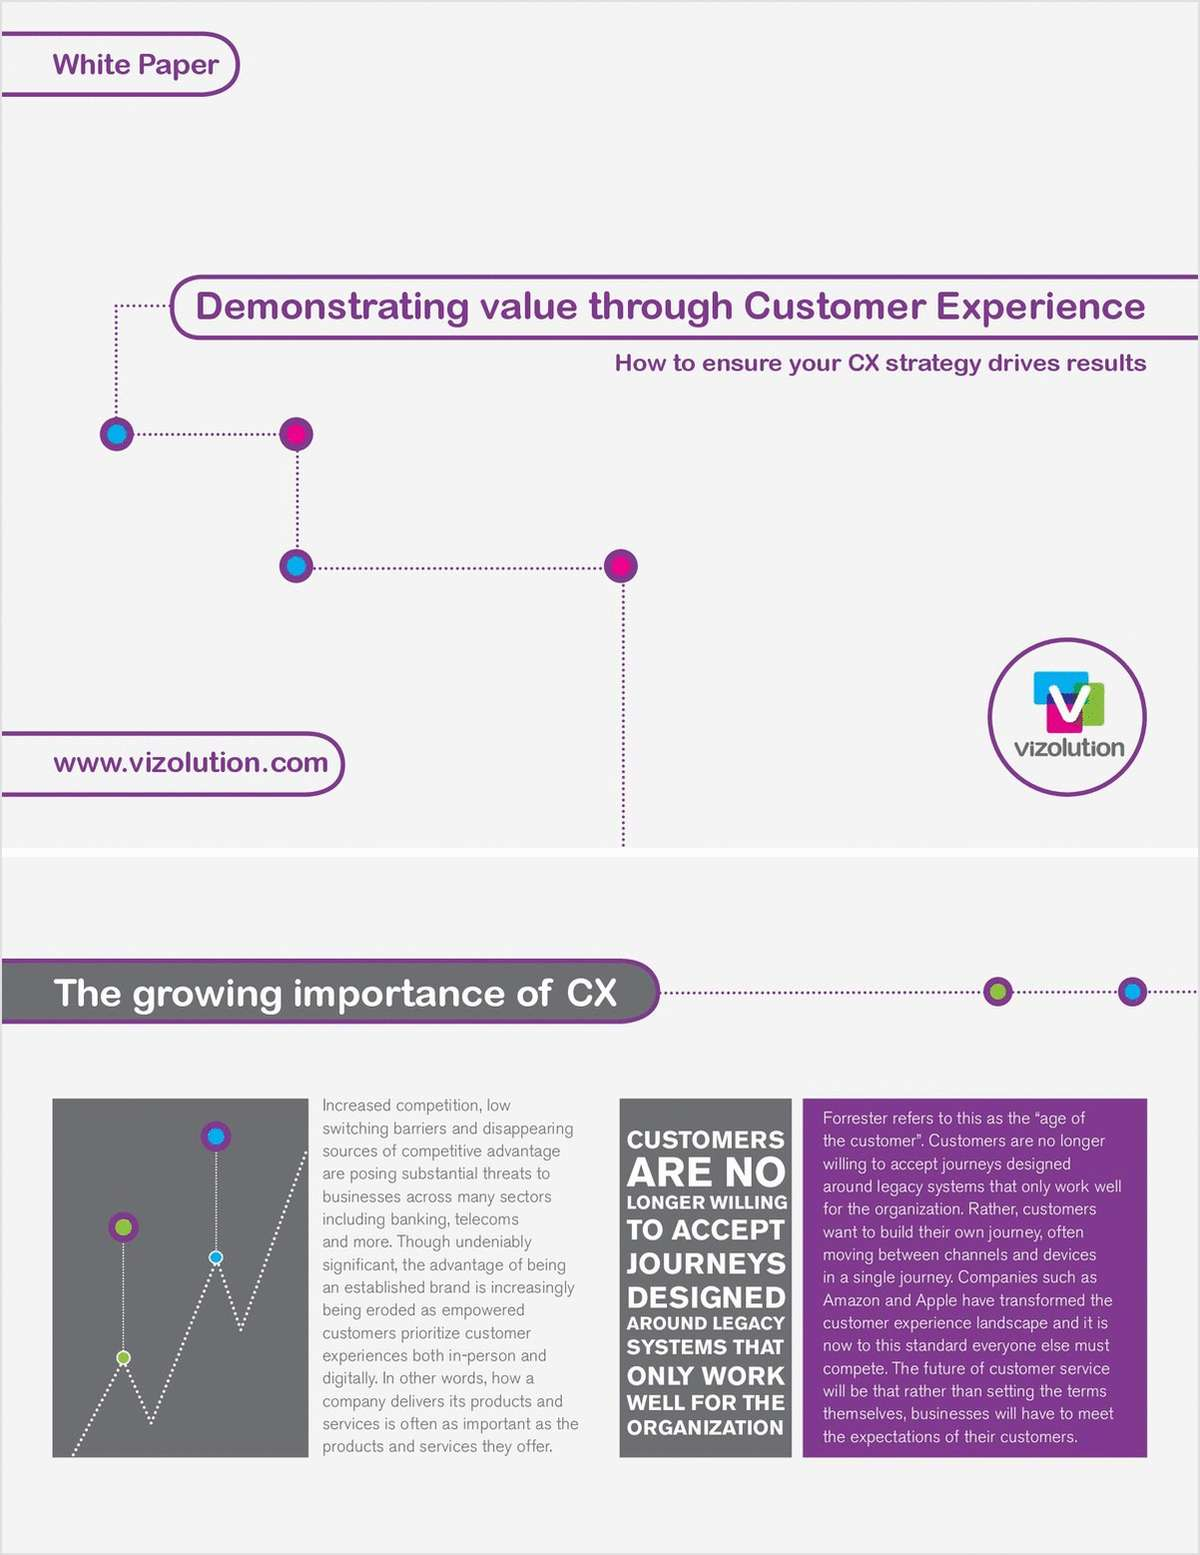 Demonstrating Value Through Customer Experience - US